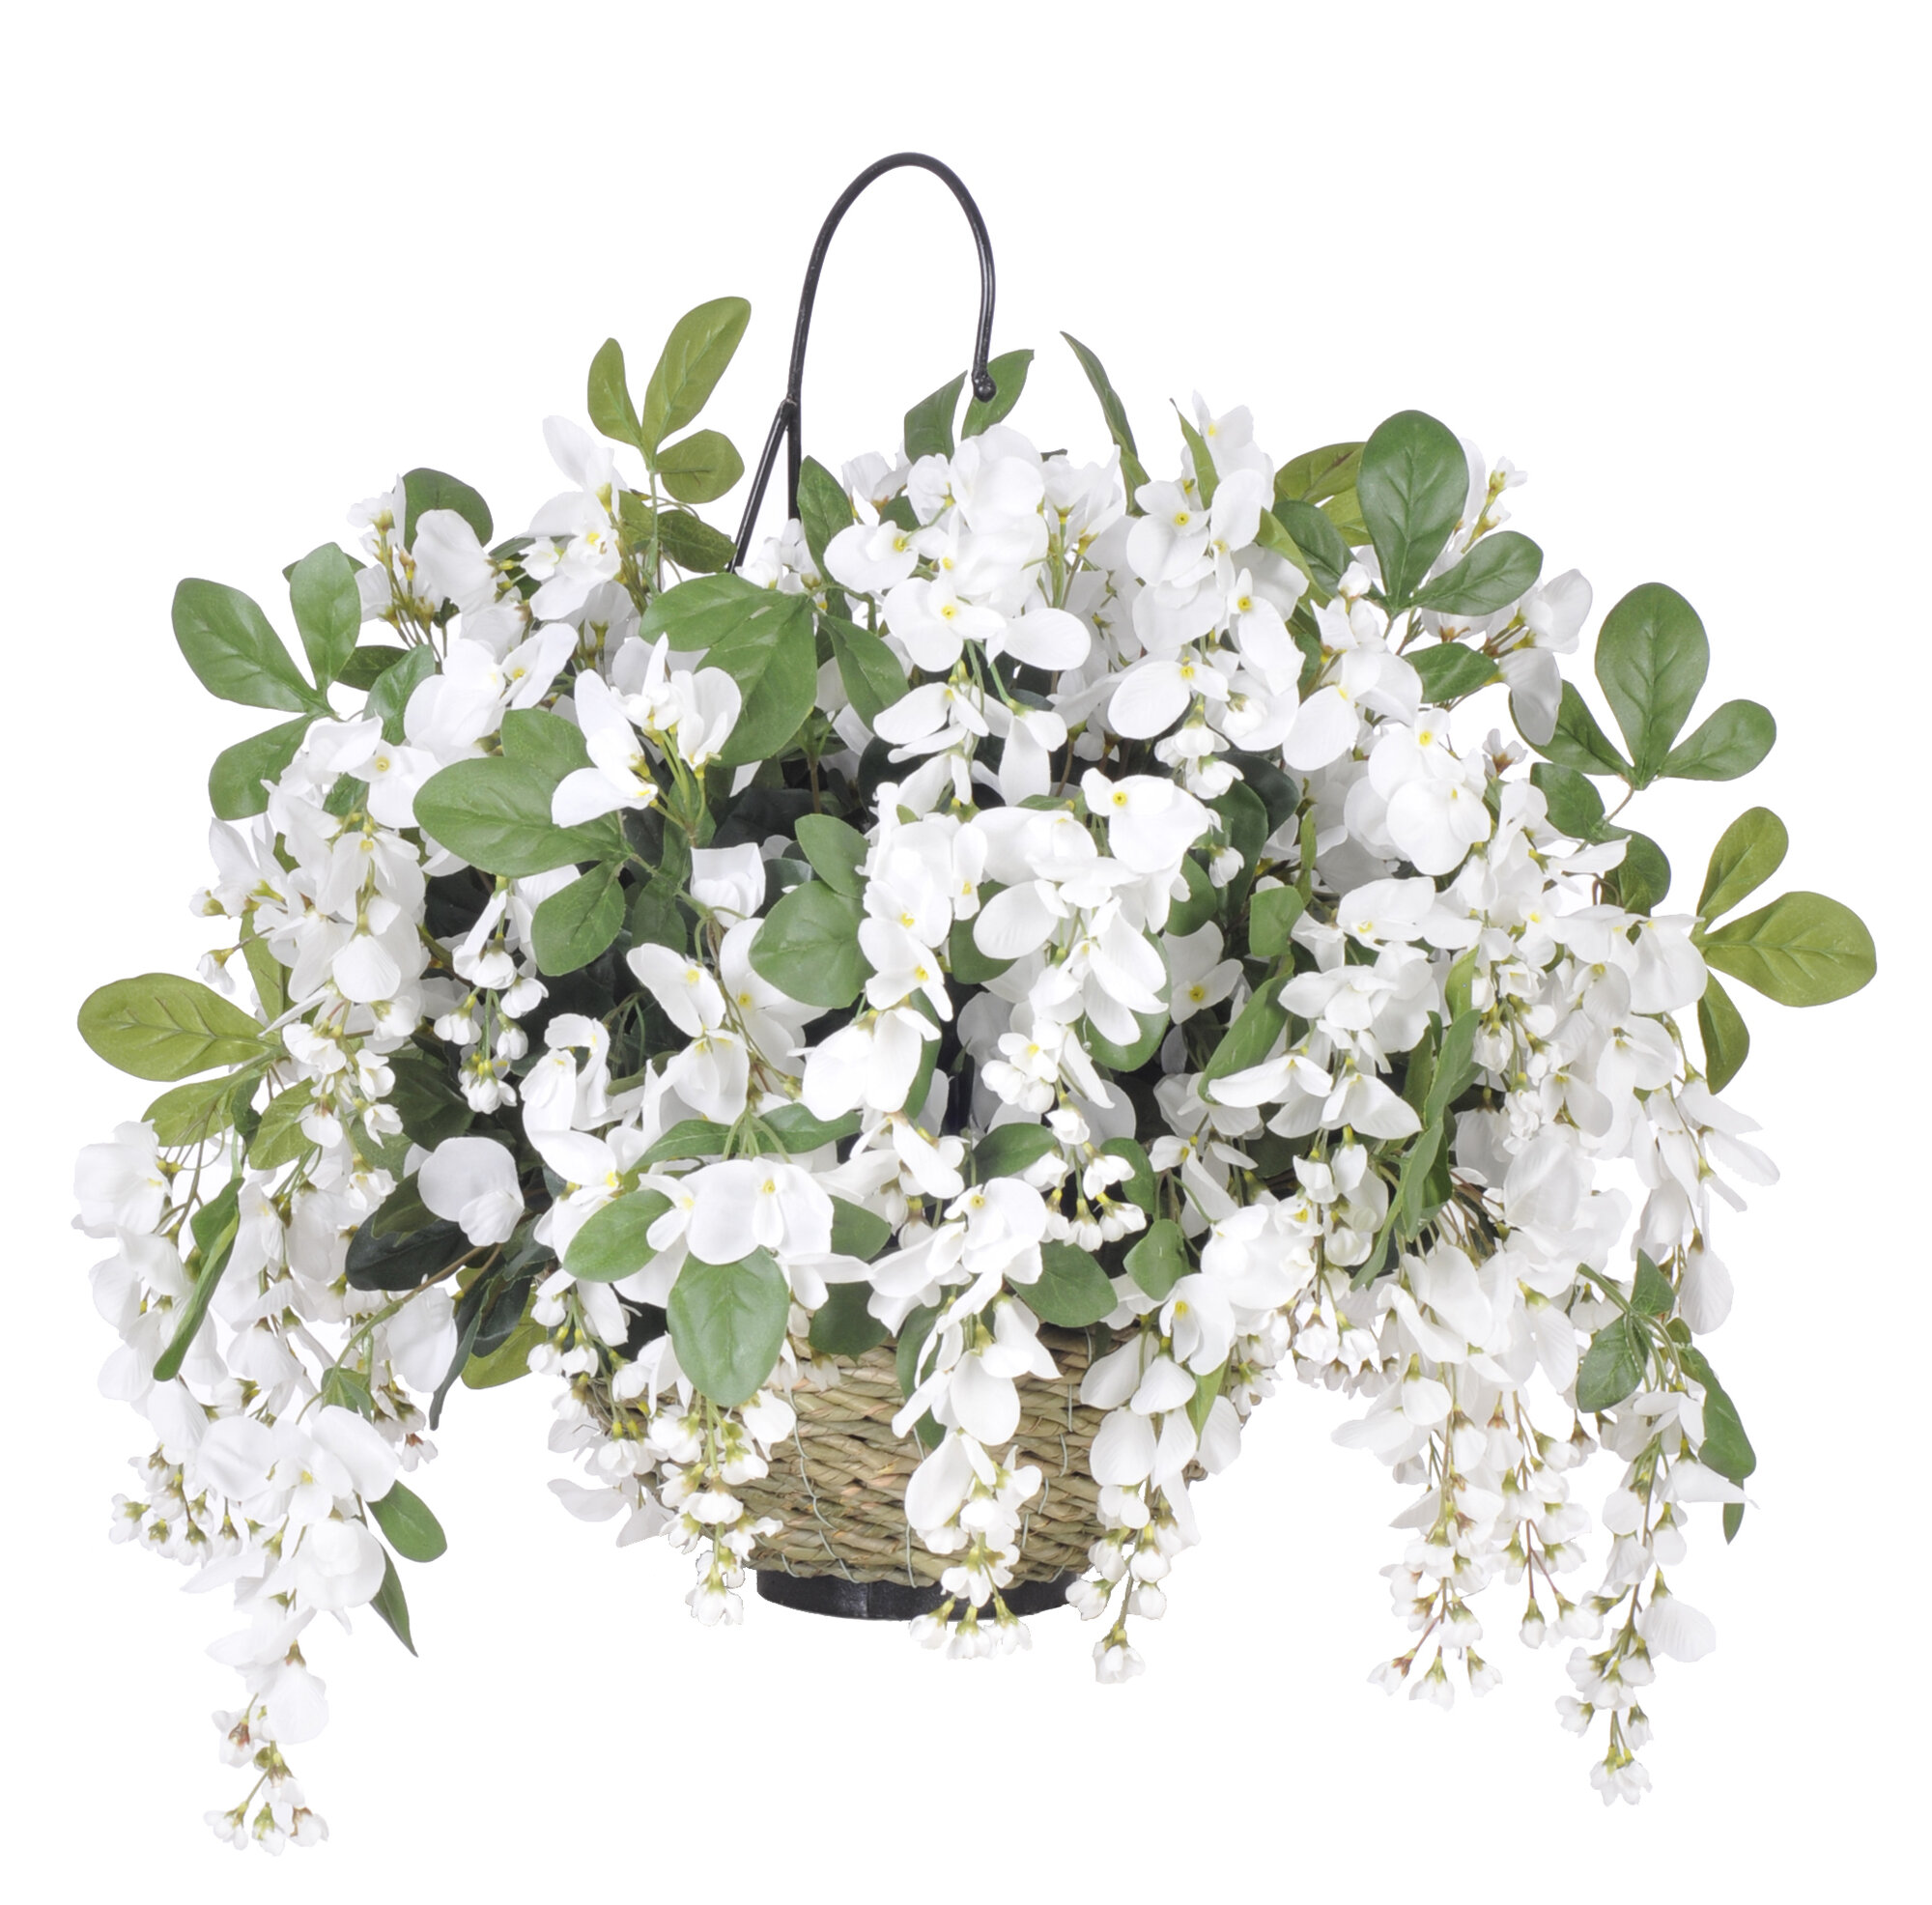 Who Has Hanging Flower Baskets On Sale : House of silk flowers inc artificial wisteria hanging